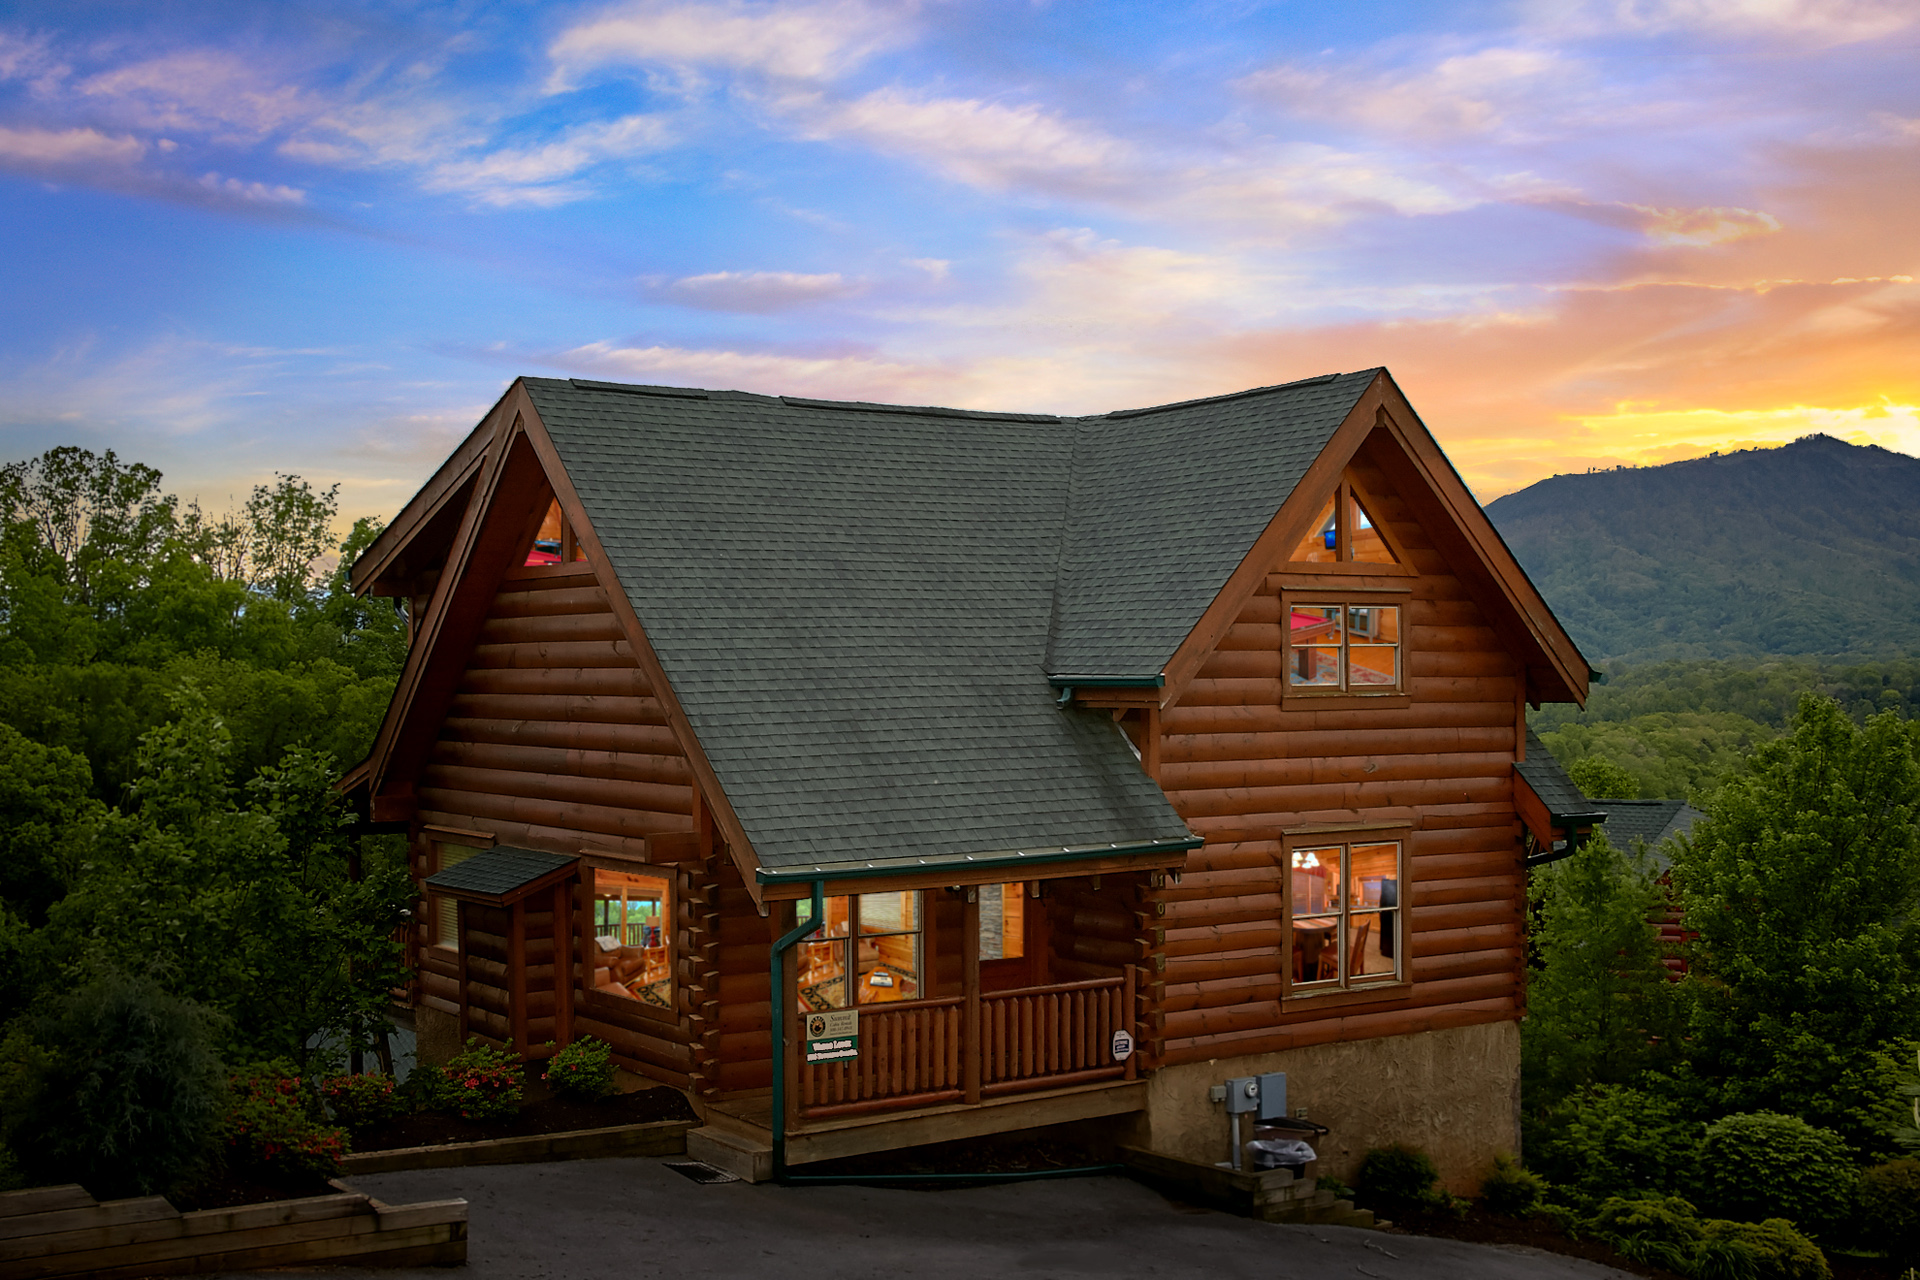 and cabins pigeon to invest forge investment strategies best rentals gatlinburg in time cabin